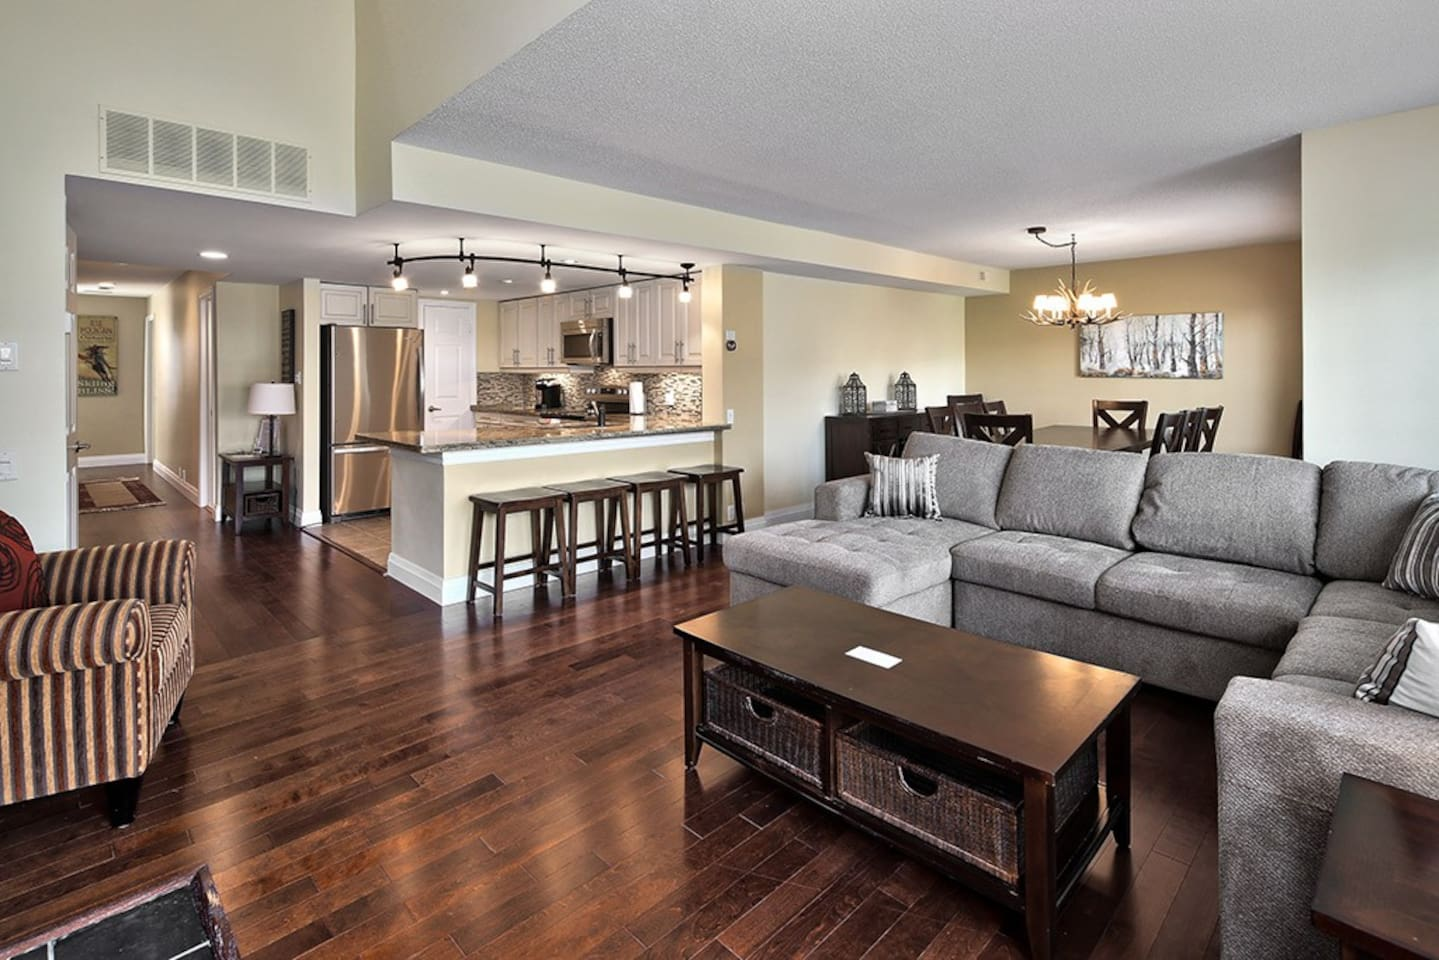 Extensive open concept living area including kitchen, living room and dining room